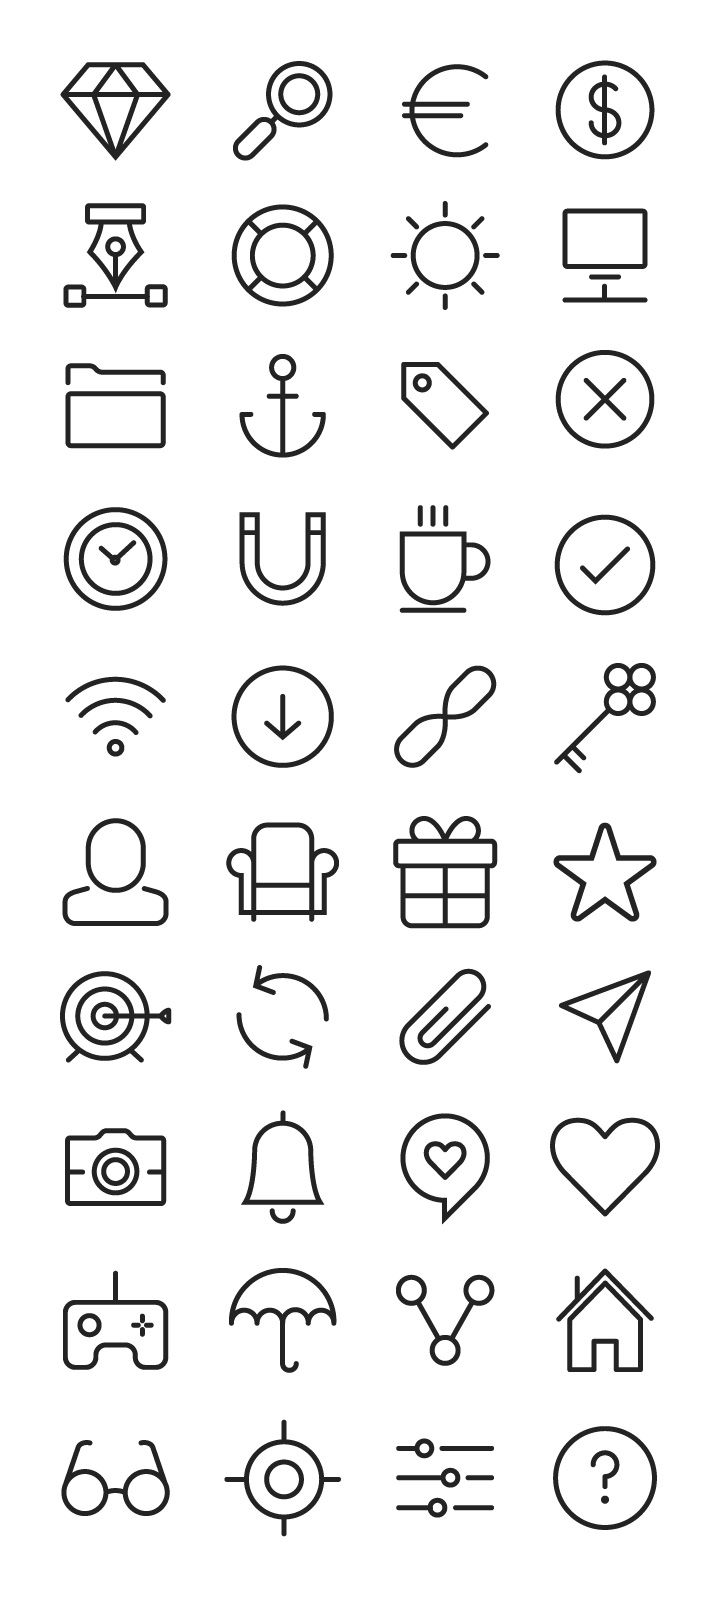 best ideas about glyphs symbols glyphs symbol today we want to share our readers a sample pack including 40 icons from